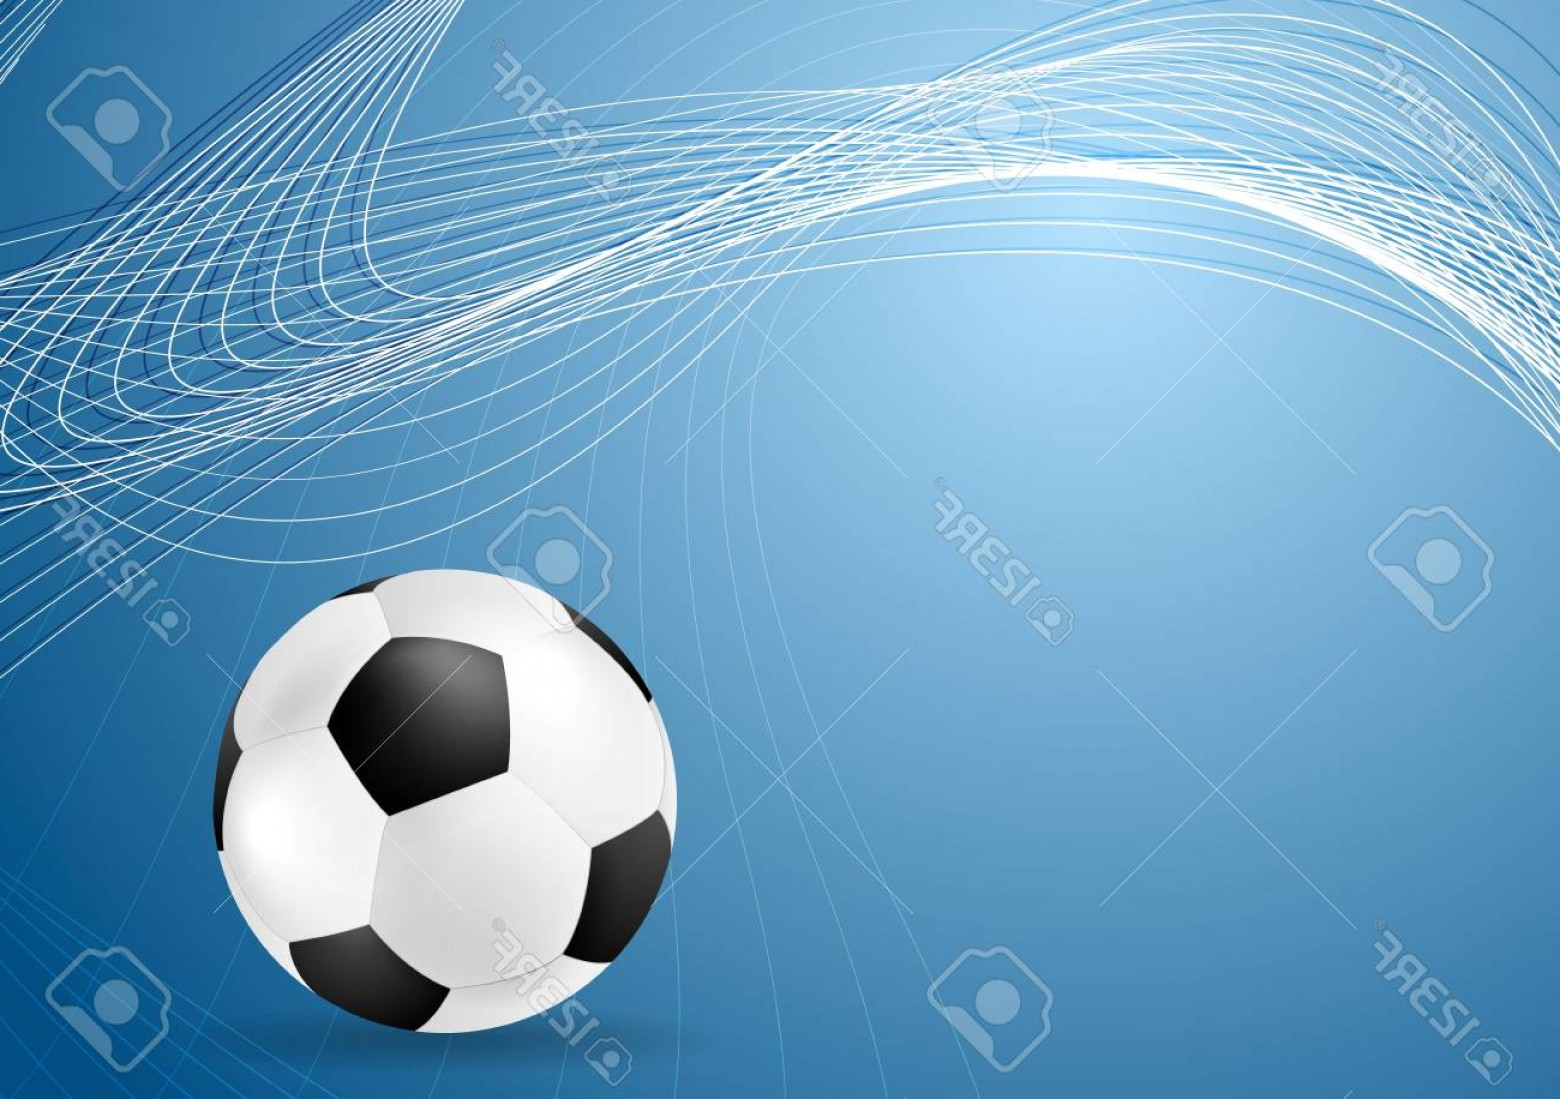 Soccer Blue Background Vector Graphics: Photostock Vector Abstract Blue Wavy Soccer Background With Ball Vector Graphic Sport Design